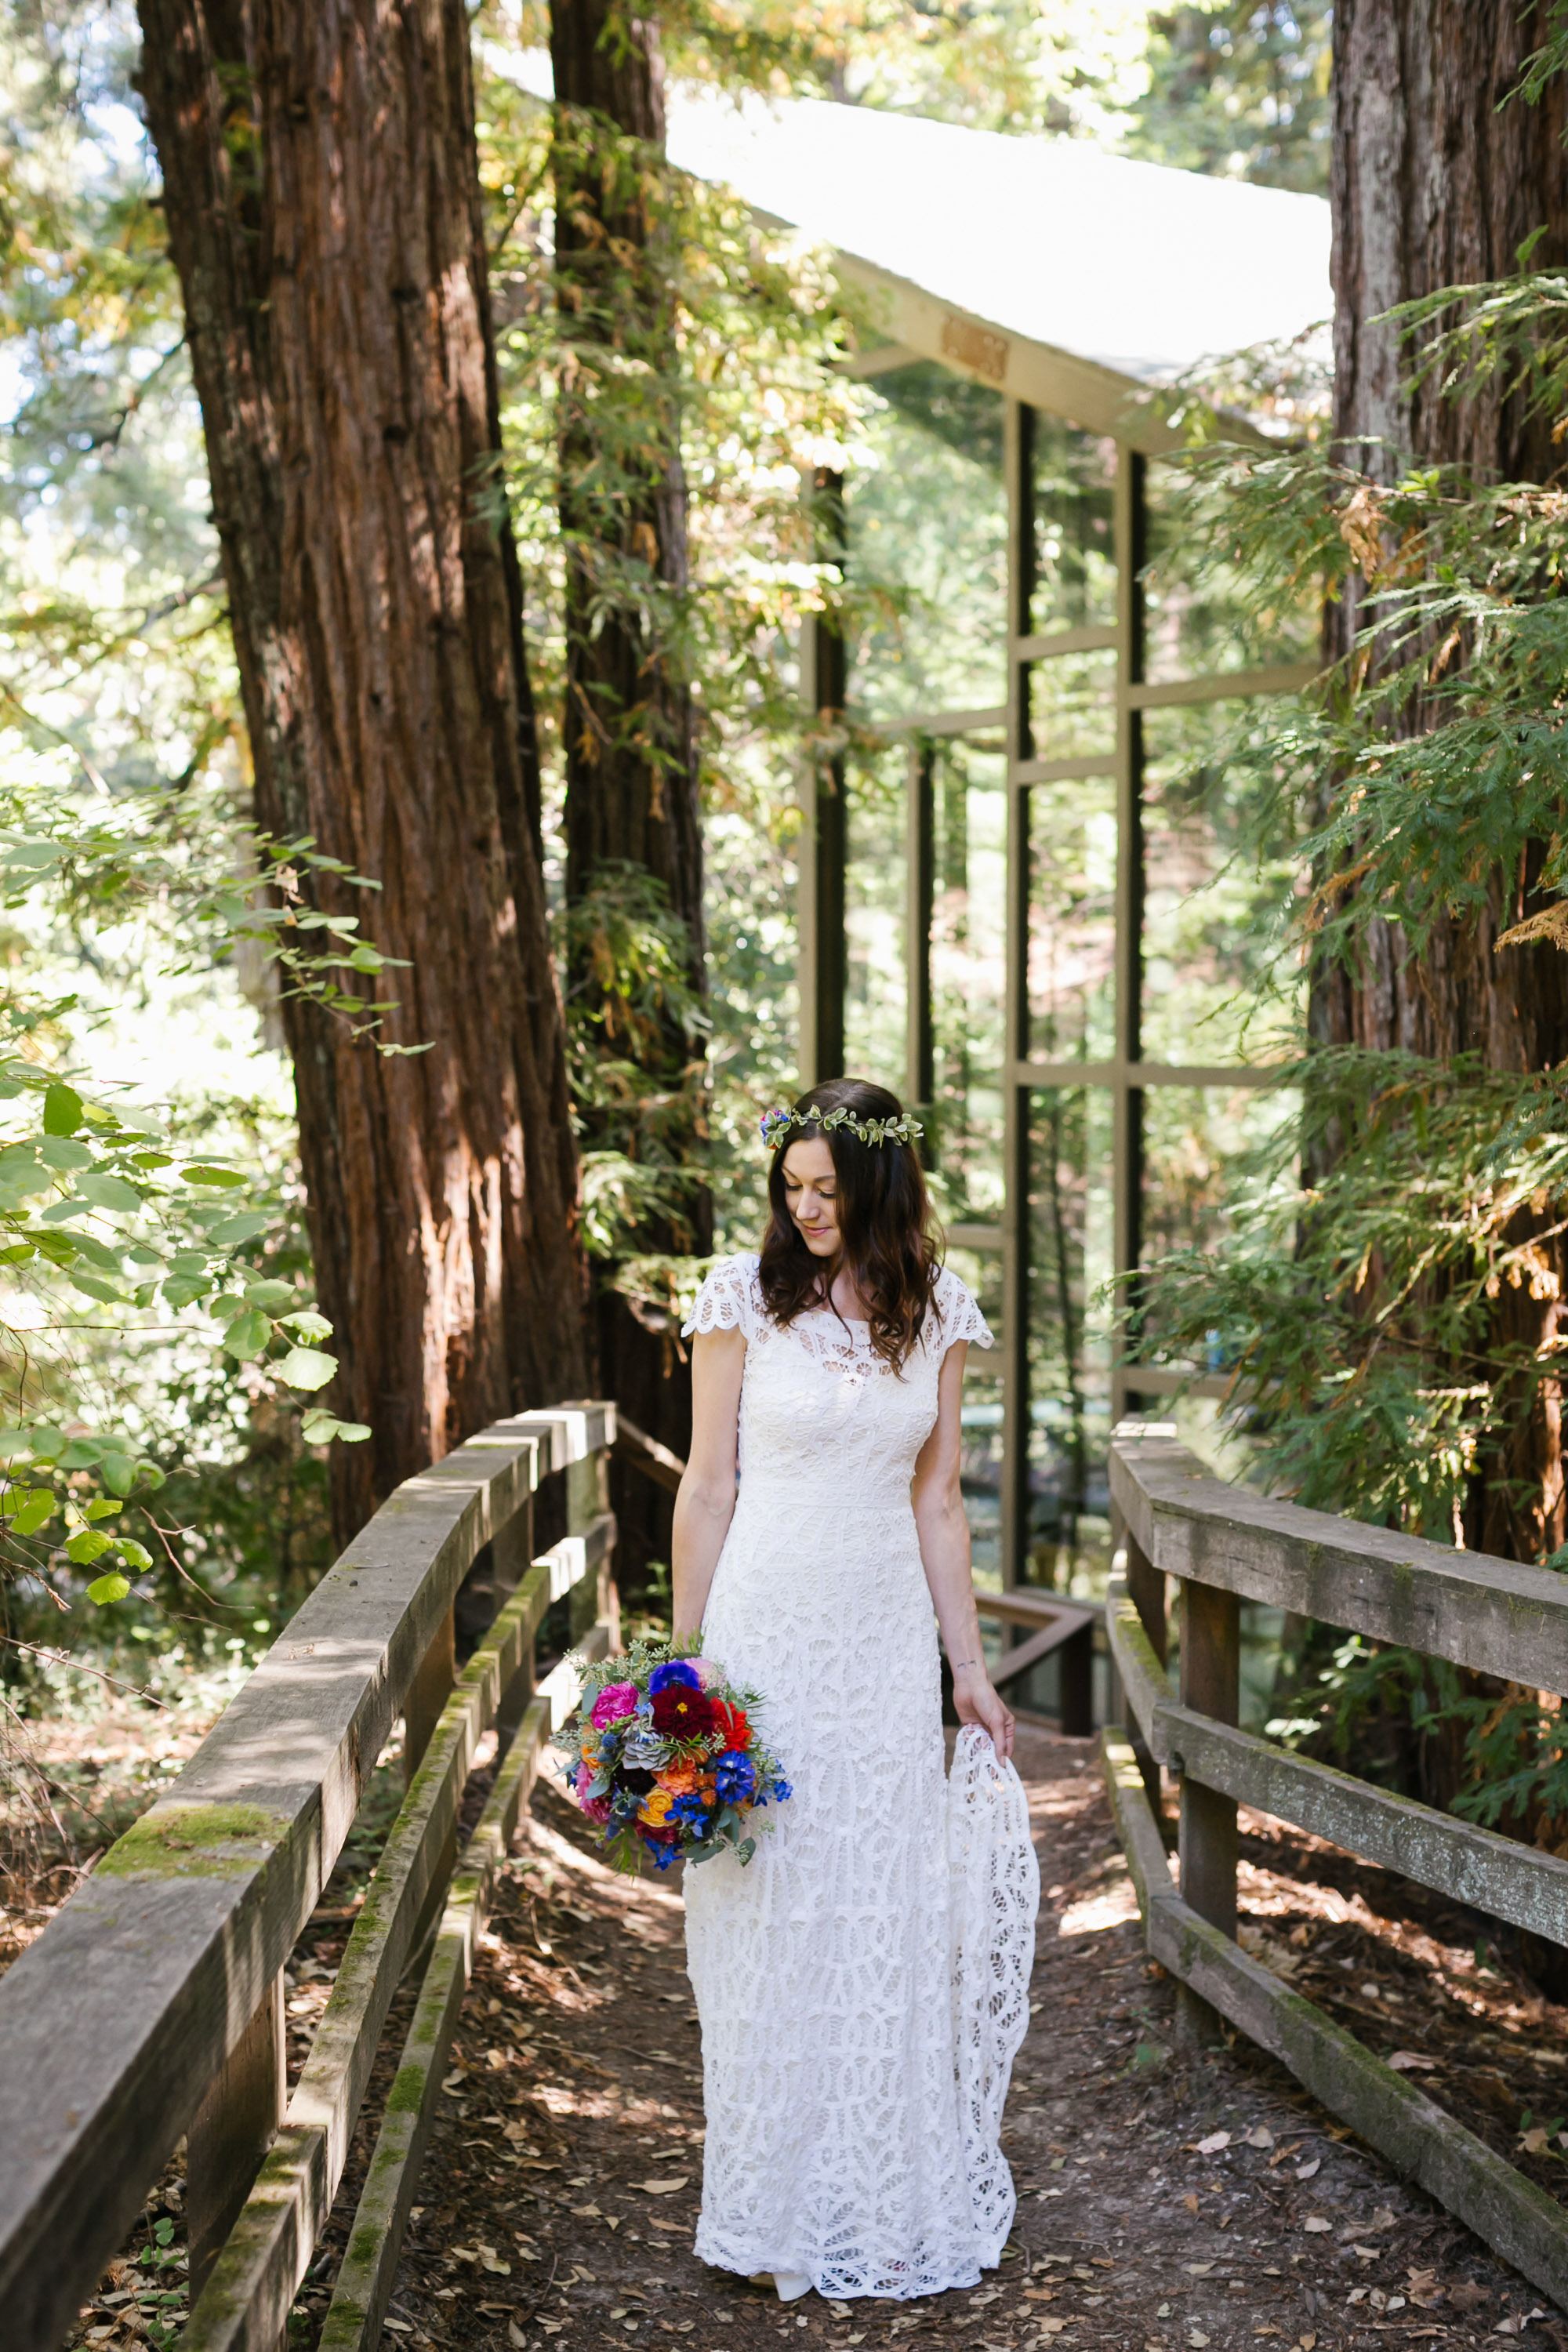 Bride holding colorful bouquet in the forest